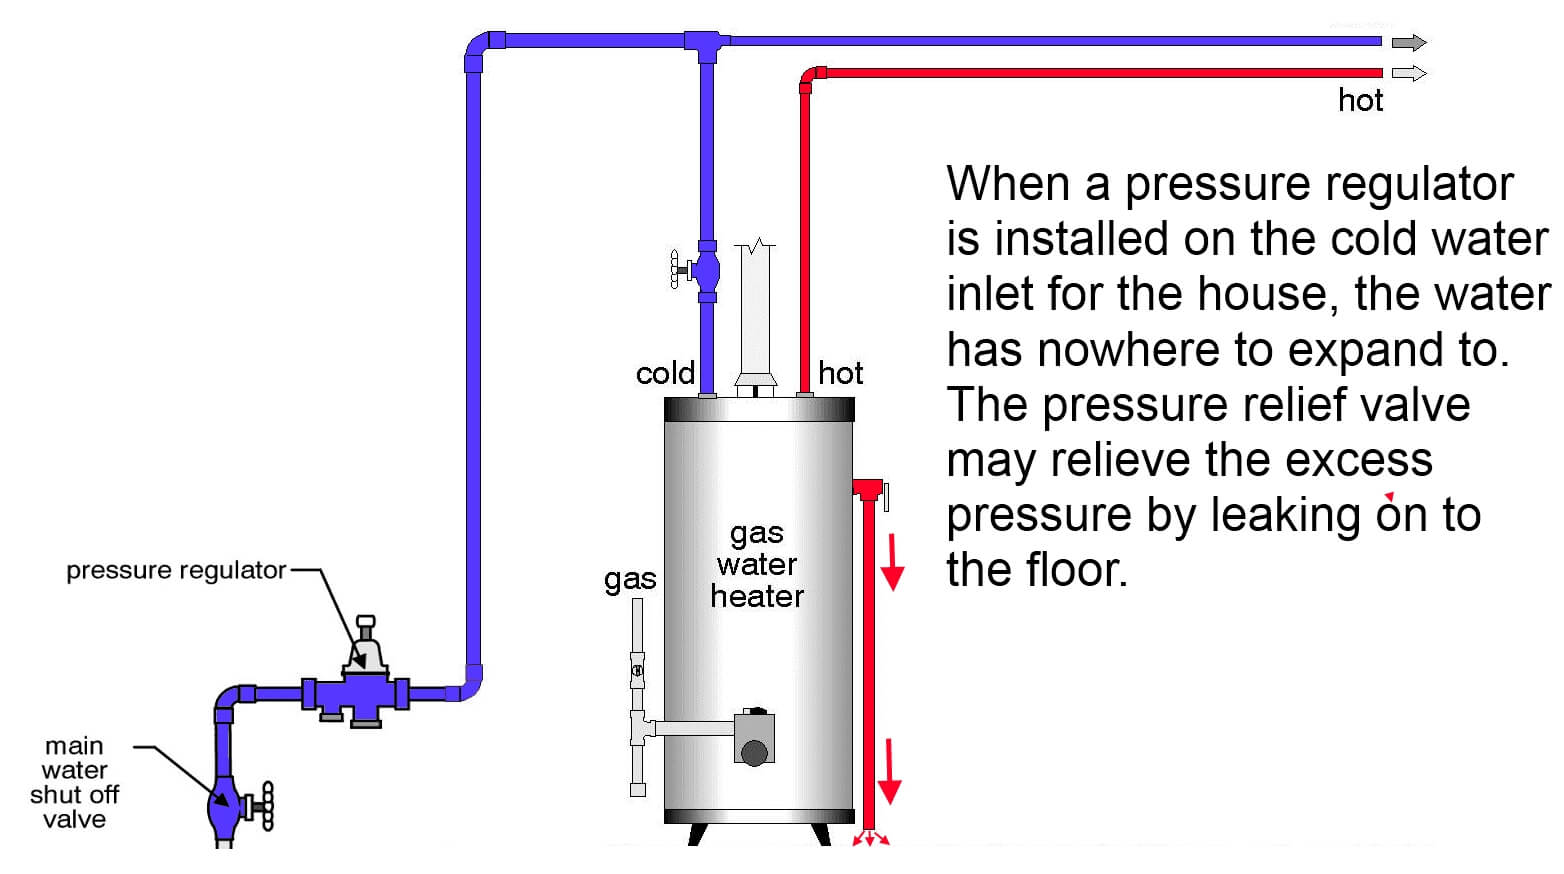 Geyser Piping Diagram Wiring Library Oil Fired Furnace Fan Center Relay Wire Pressure Regulator Prevents Expansion